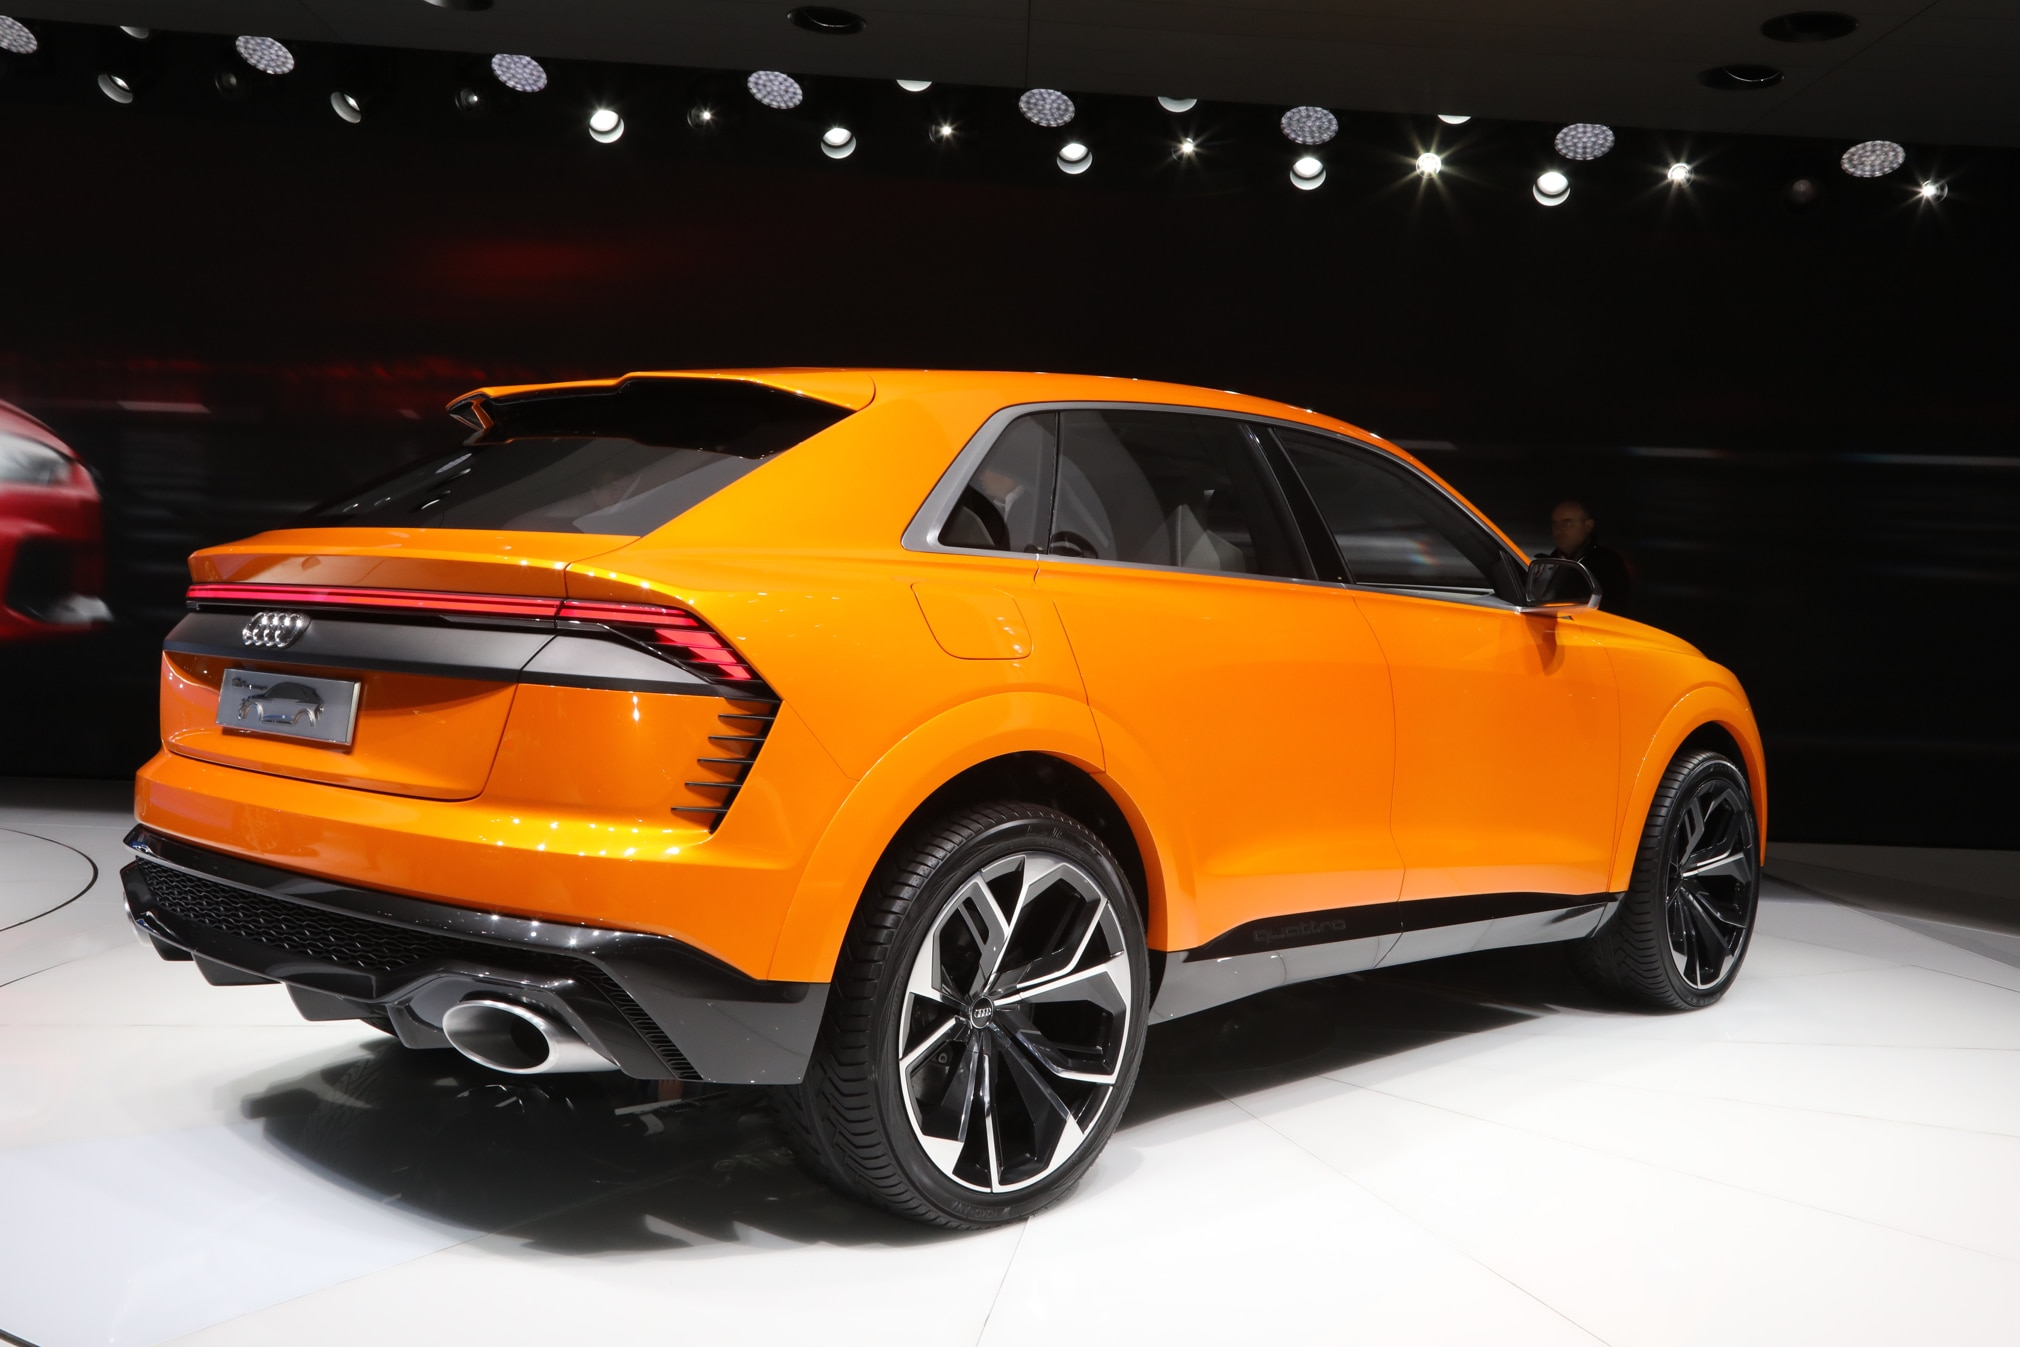 audi q8 sport concept future says rear sketch touch pedals teased audis motor quarter three automobilemag